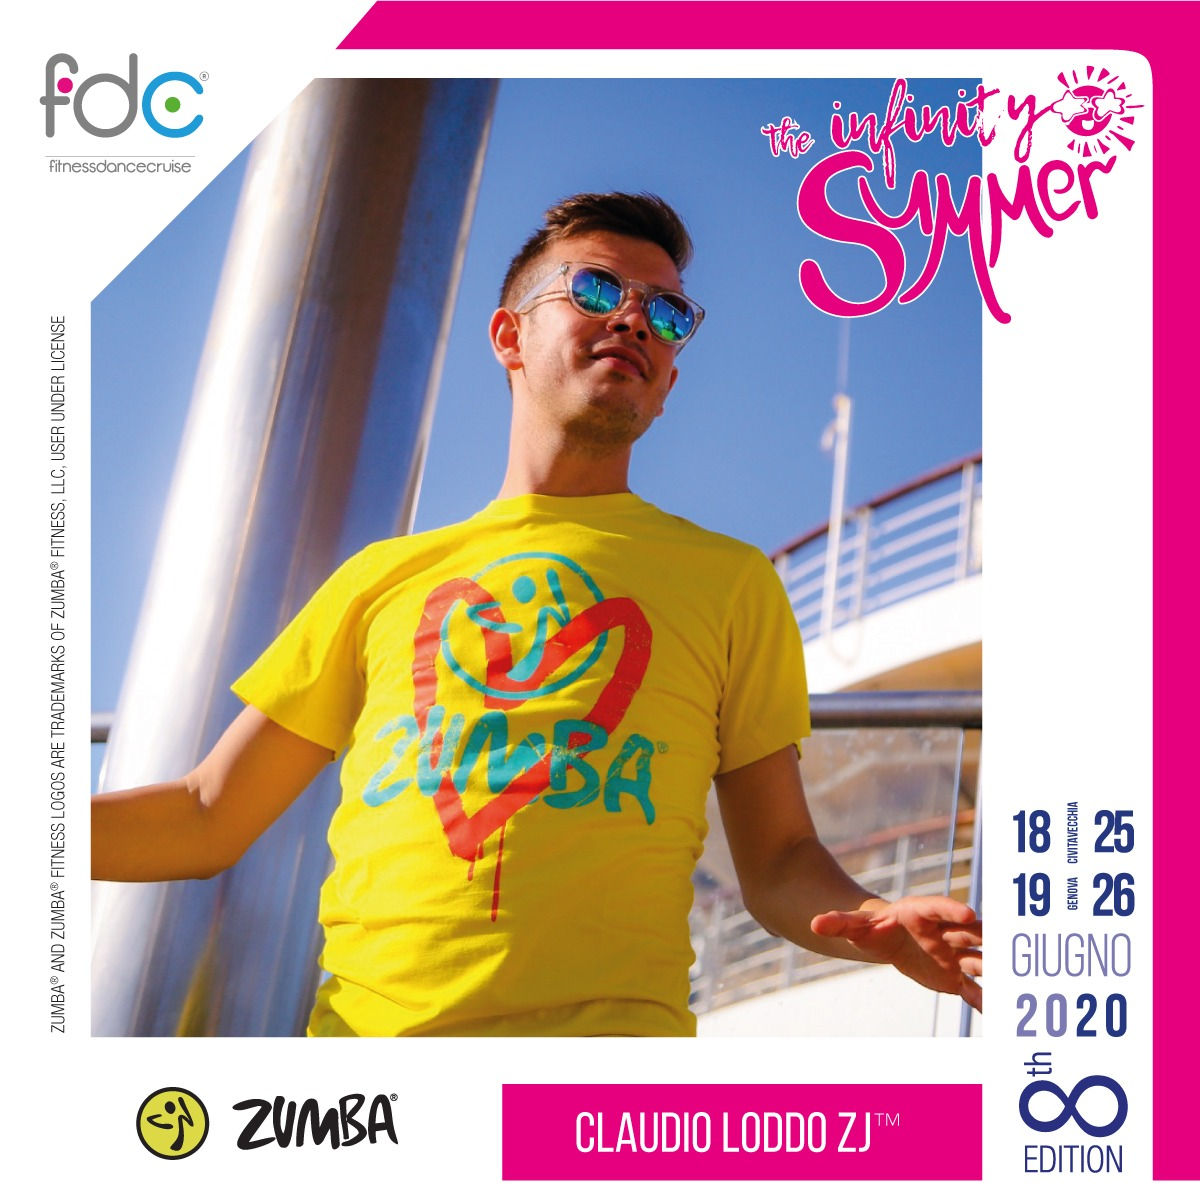 Zumba FDC Presenter Claudio Loddo